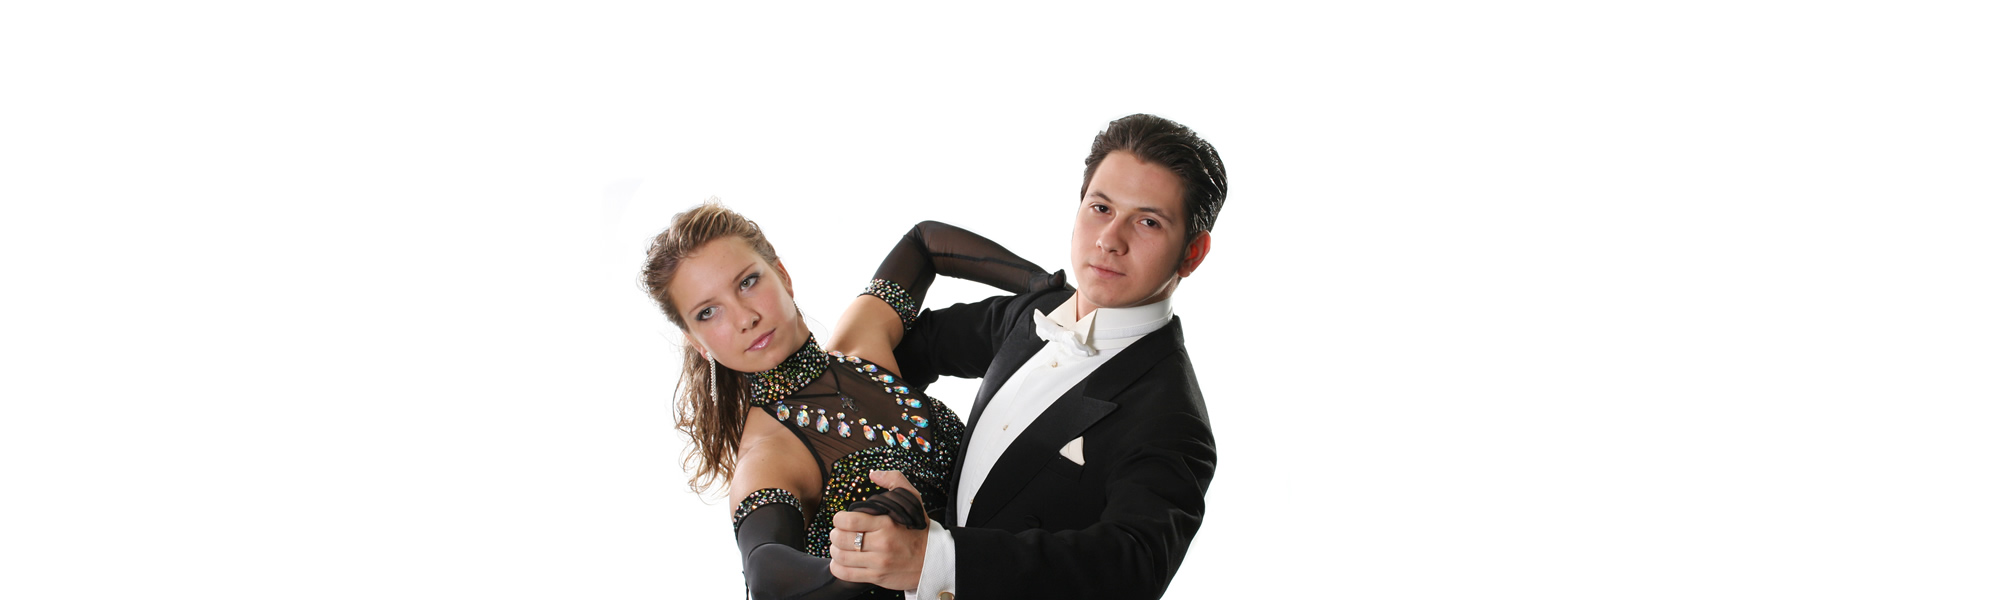 Ballroom Hold – Couple in Black